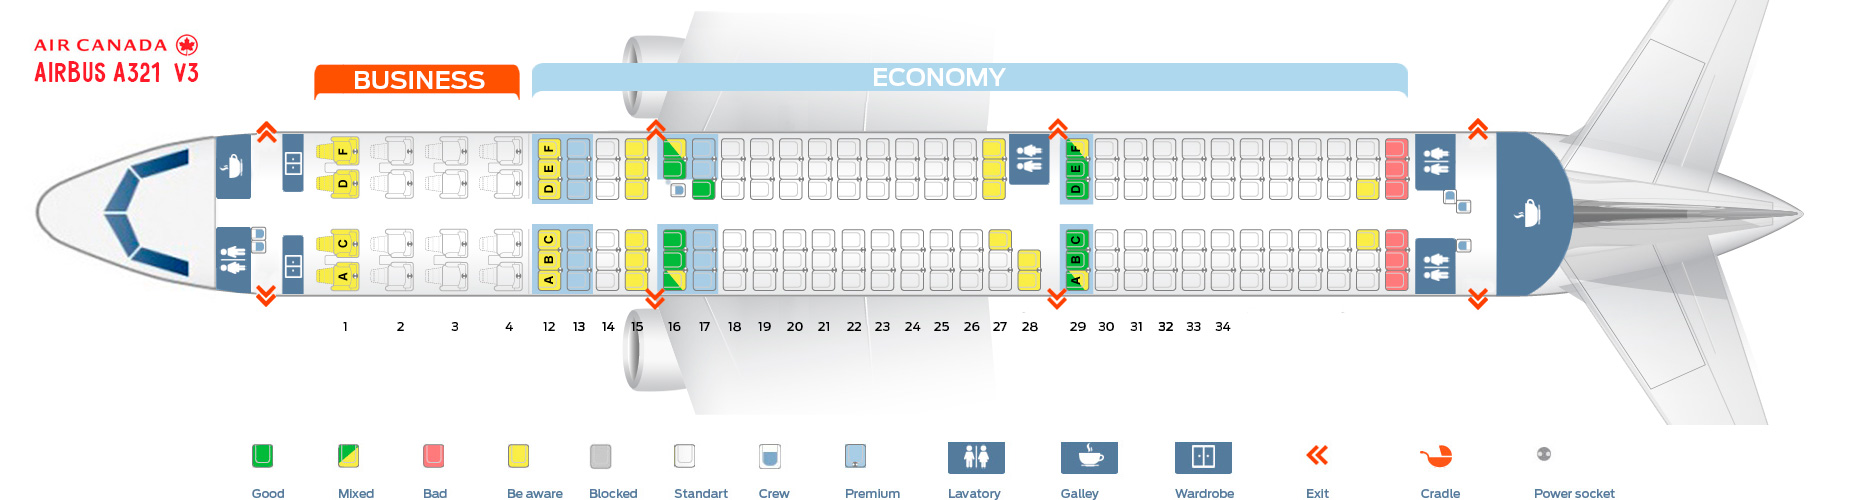 Seat map and seating chart Airbus A321 200 Air Canada V2